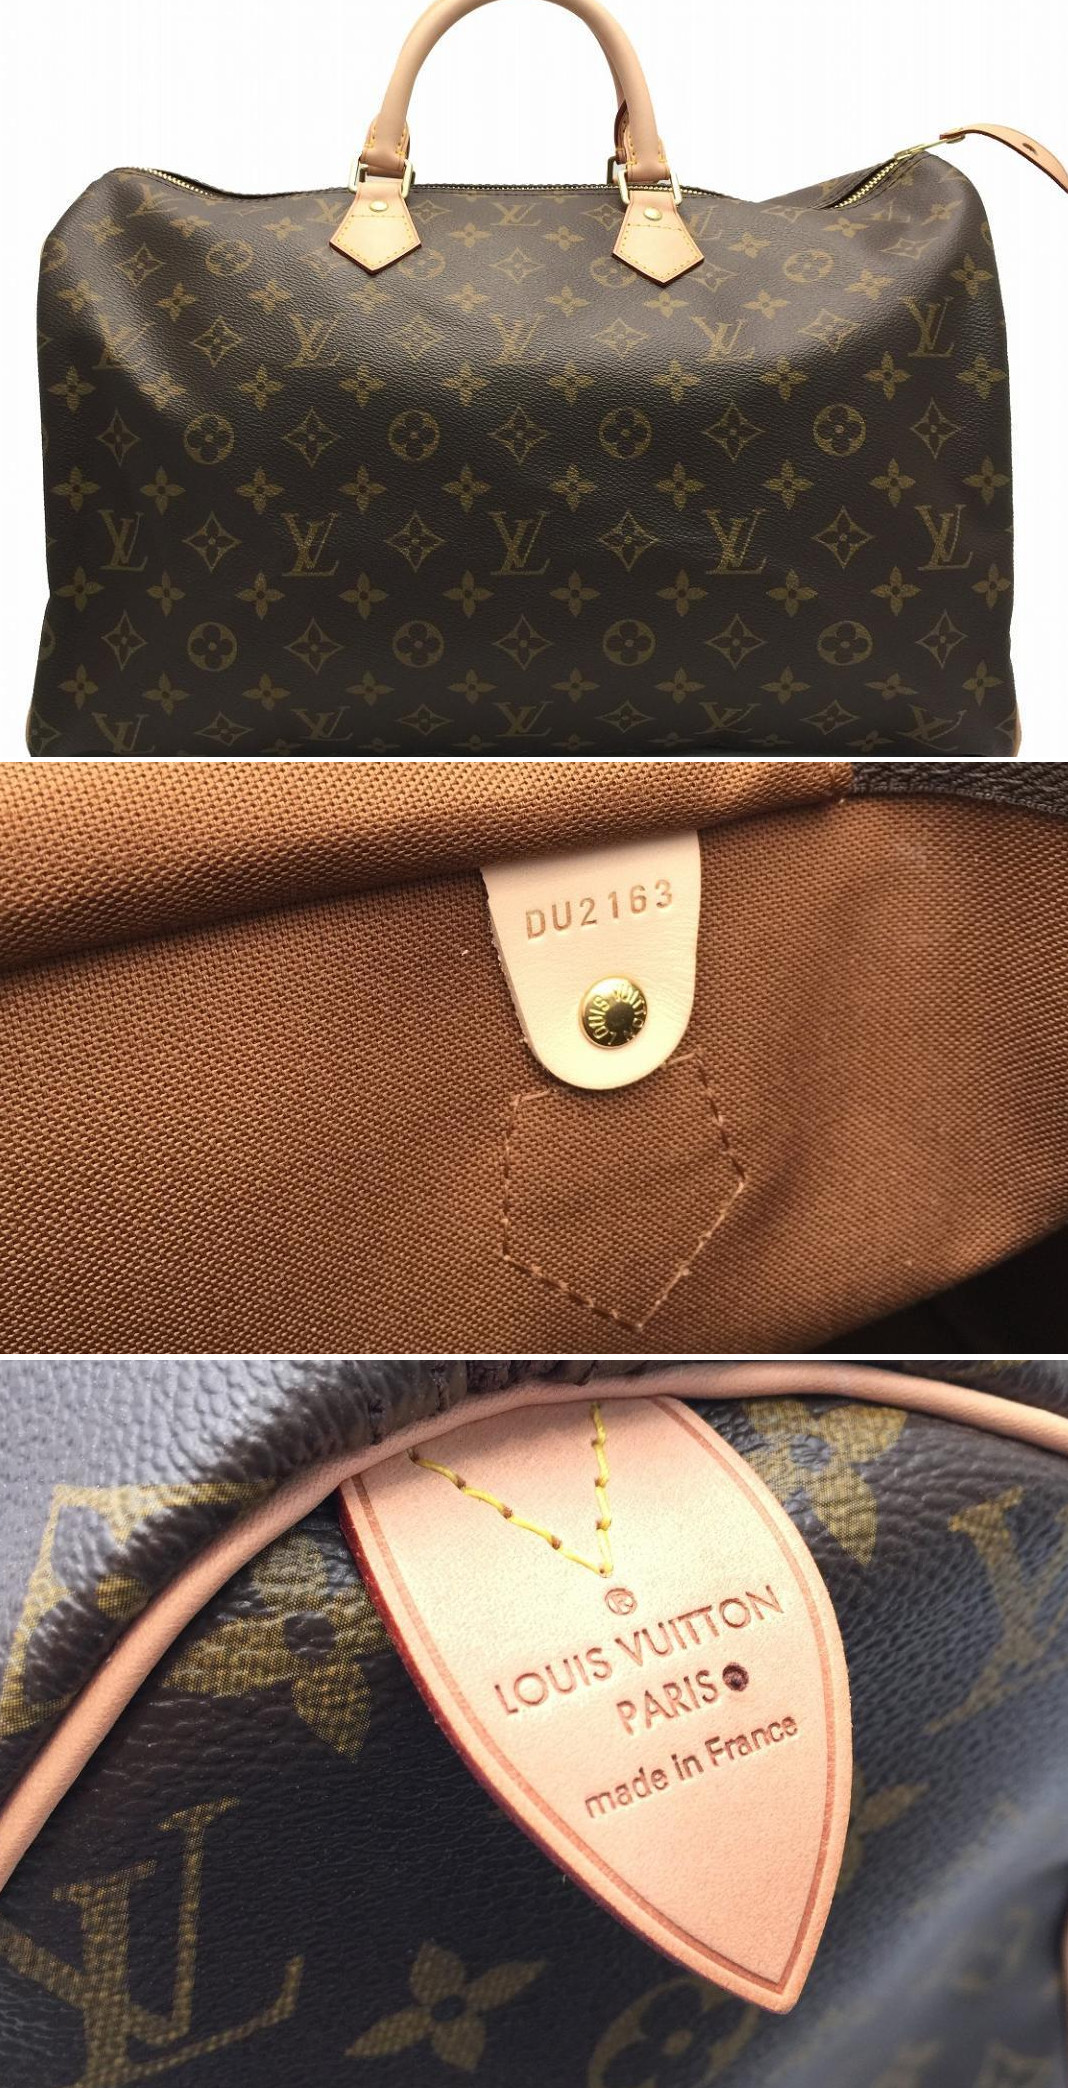 Louis Vuitton monogram speedy handbag